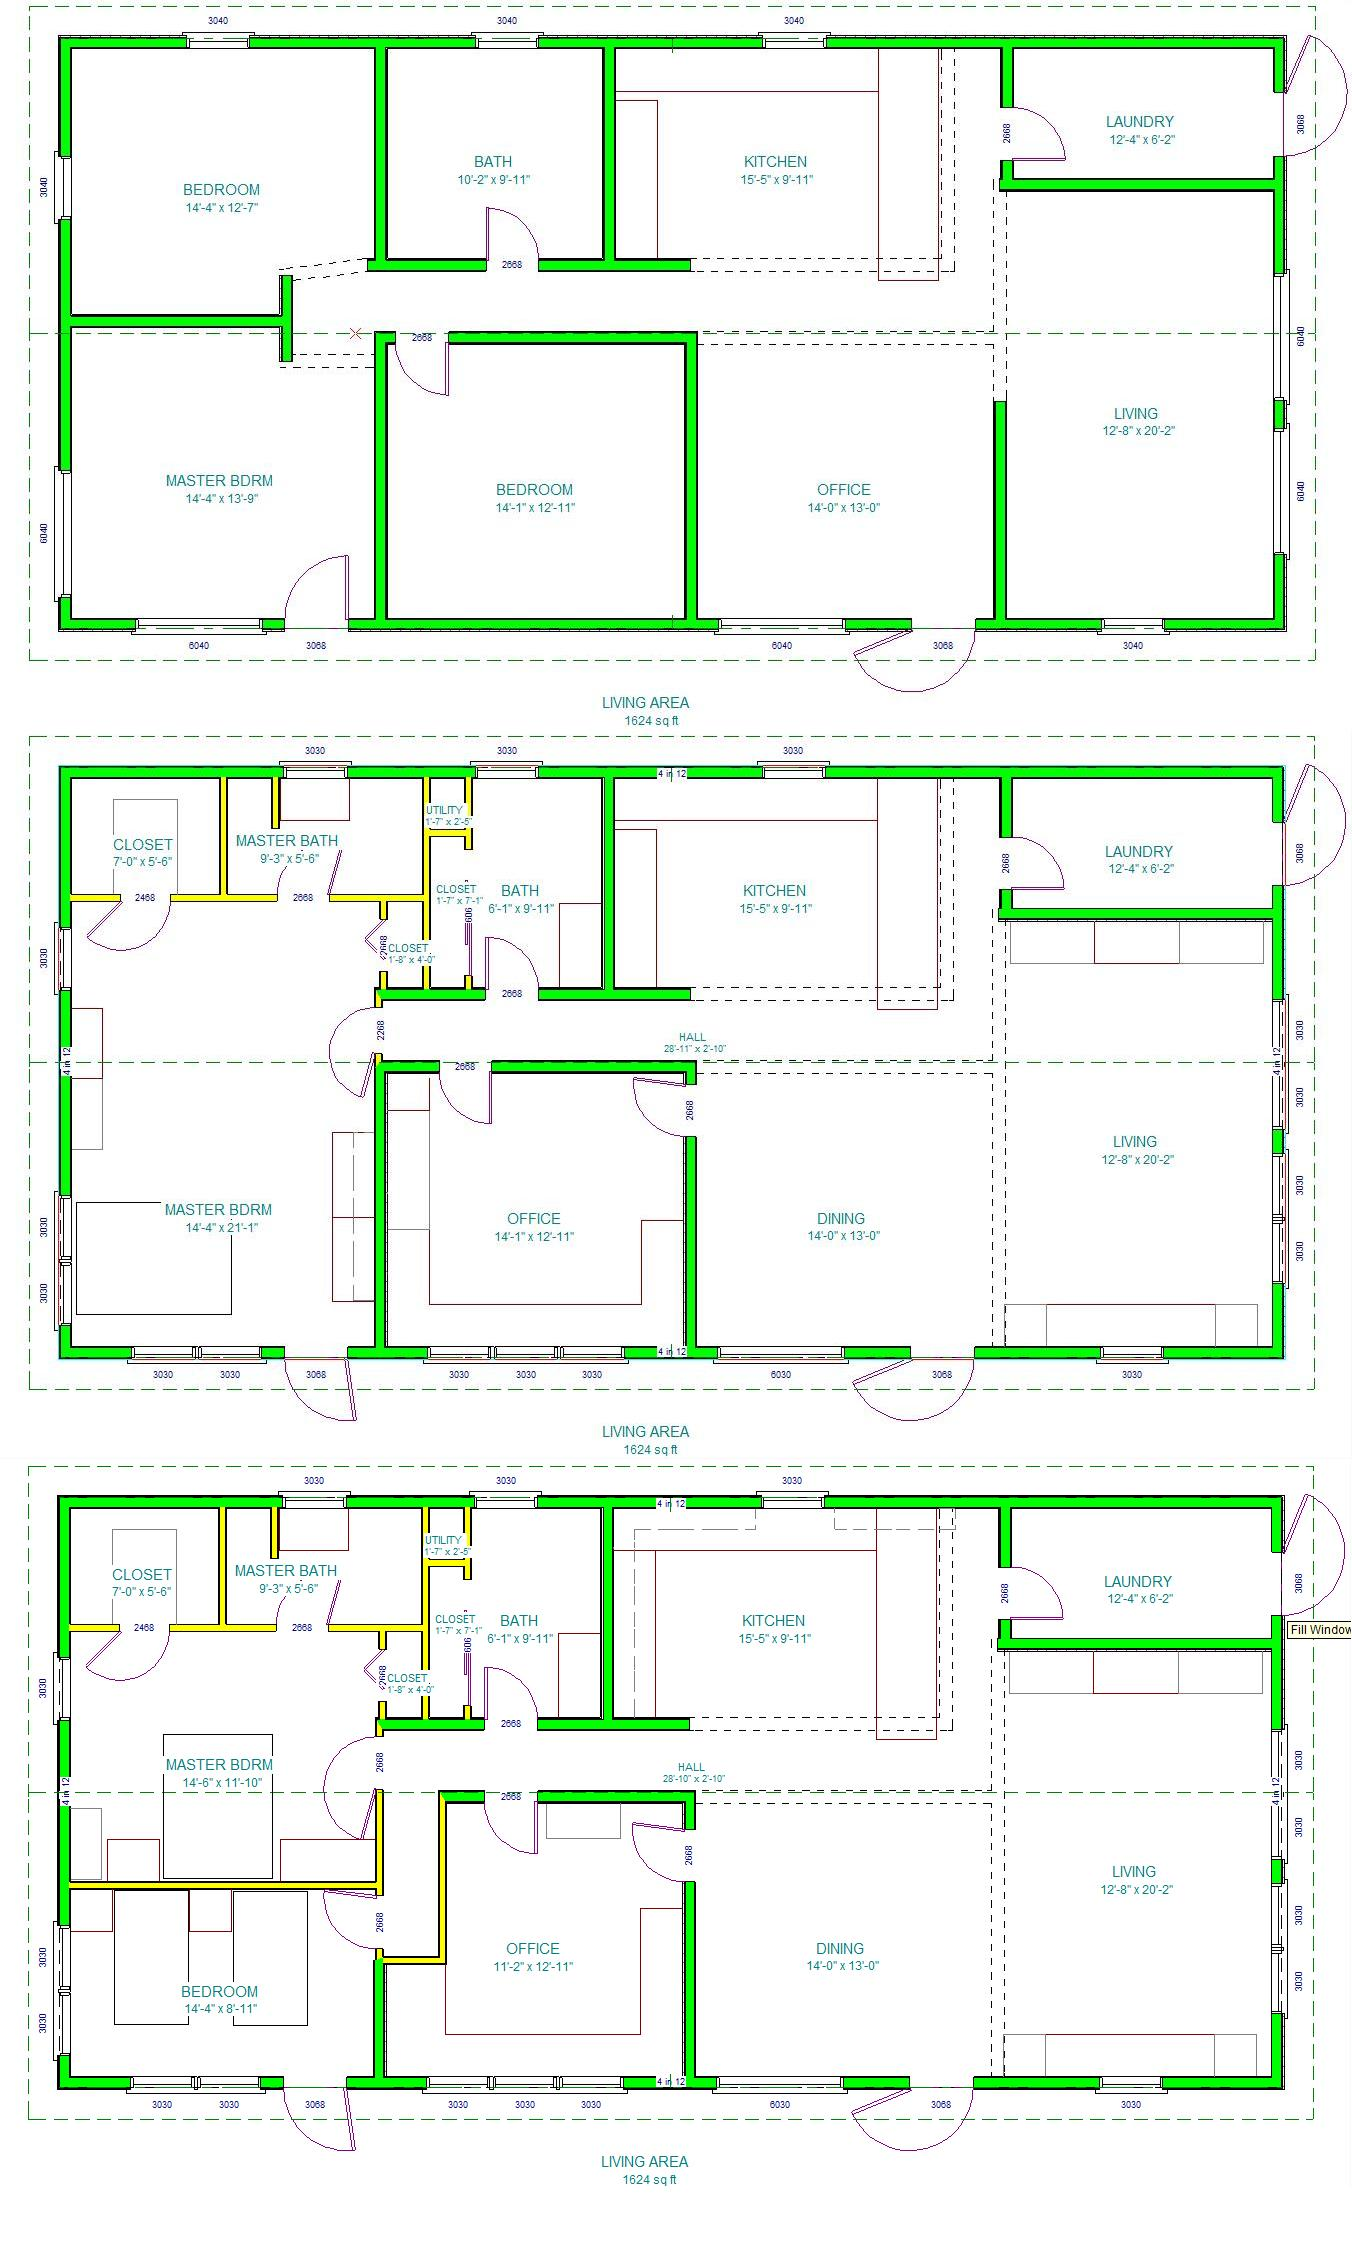 Home design image ideas home layout ideas for Home layouts floor plans